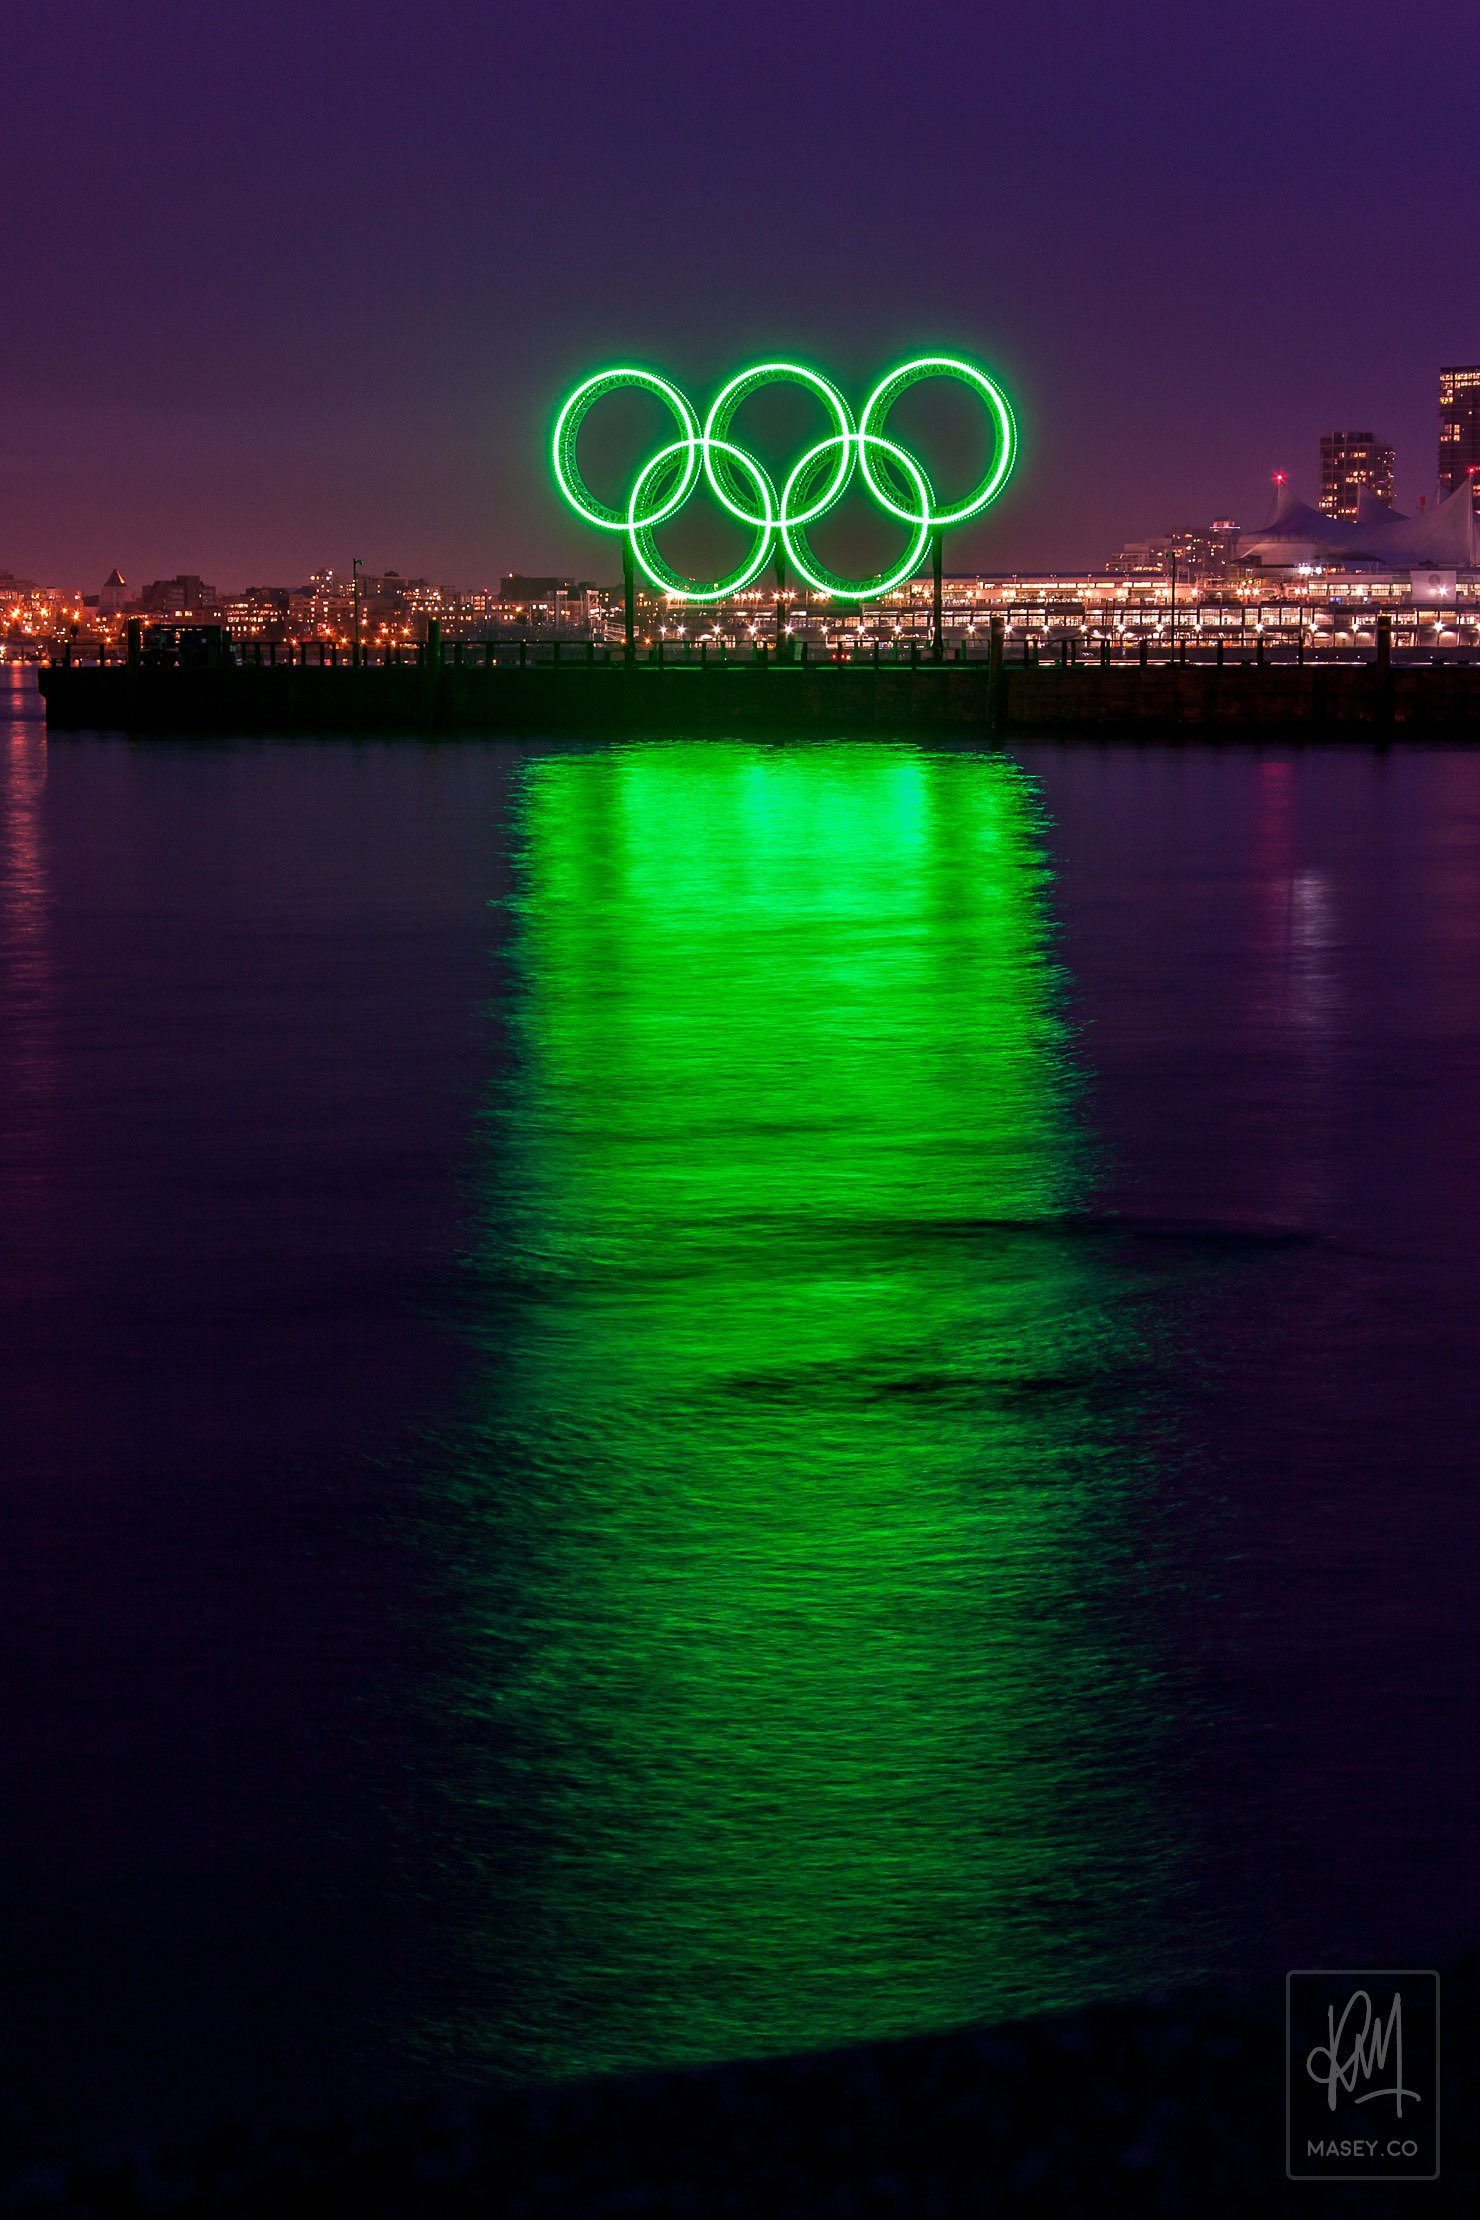 The Olympic rings shining brightly on the water in front of the Vancouver skyline.